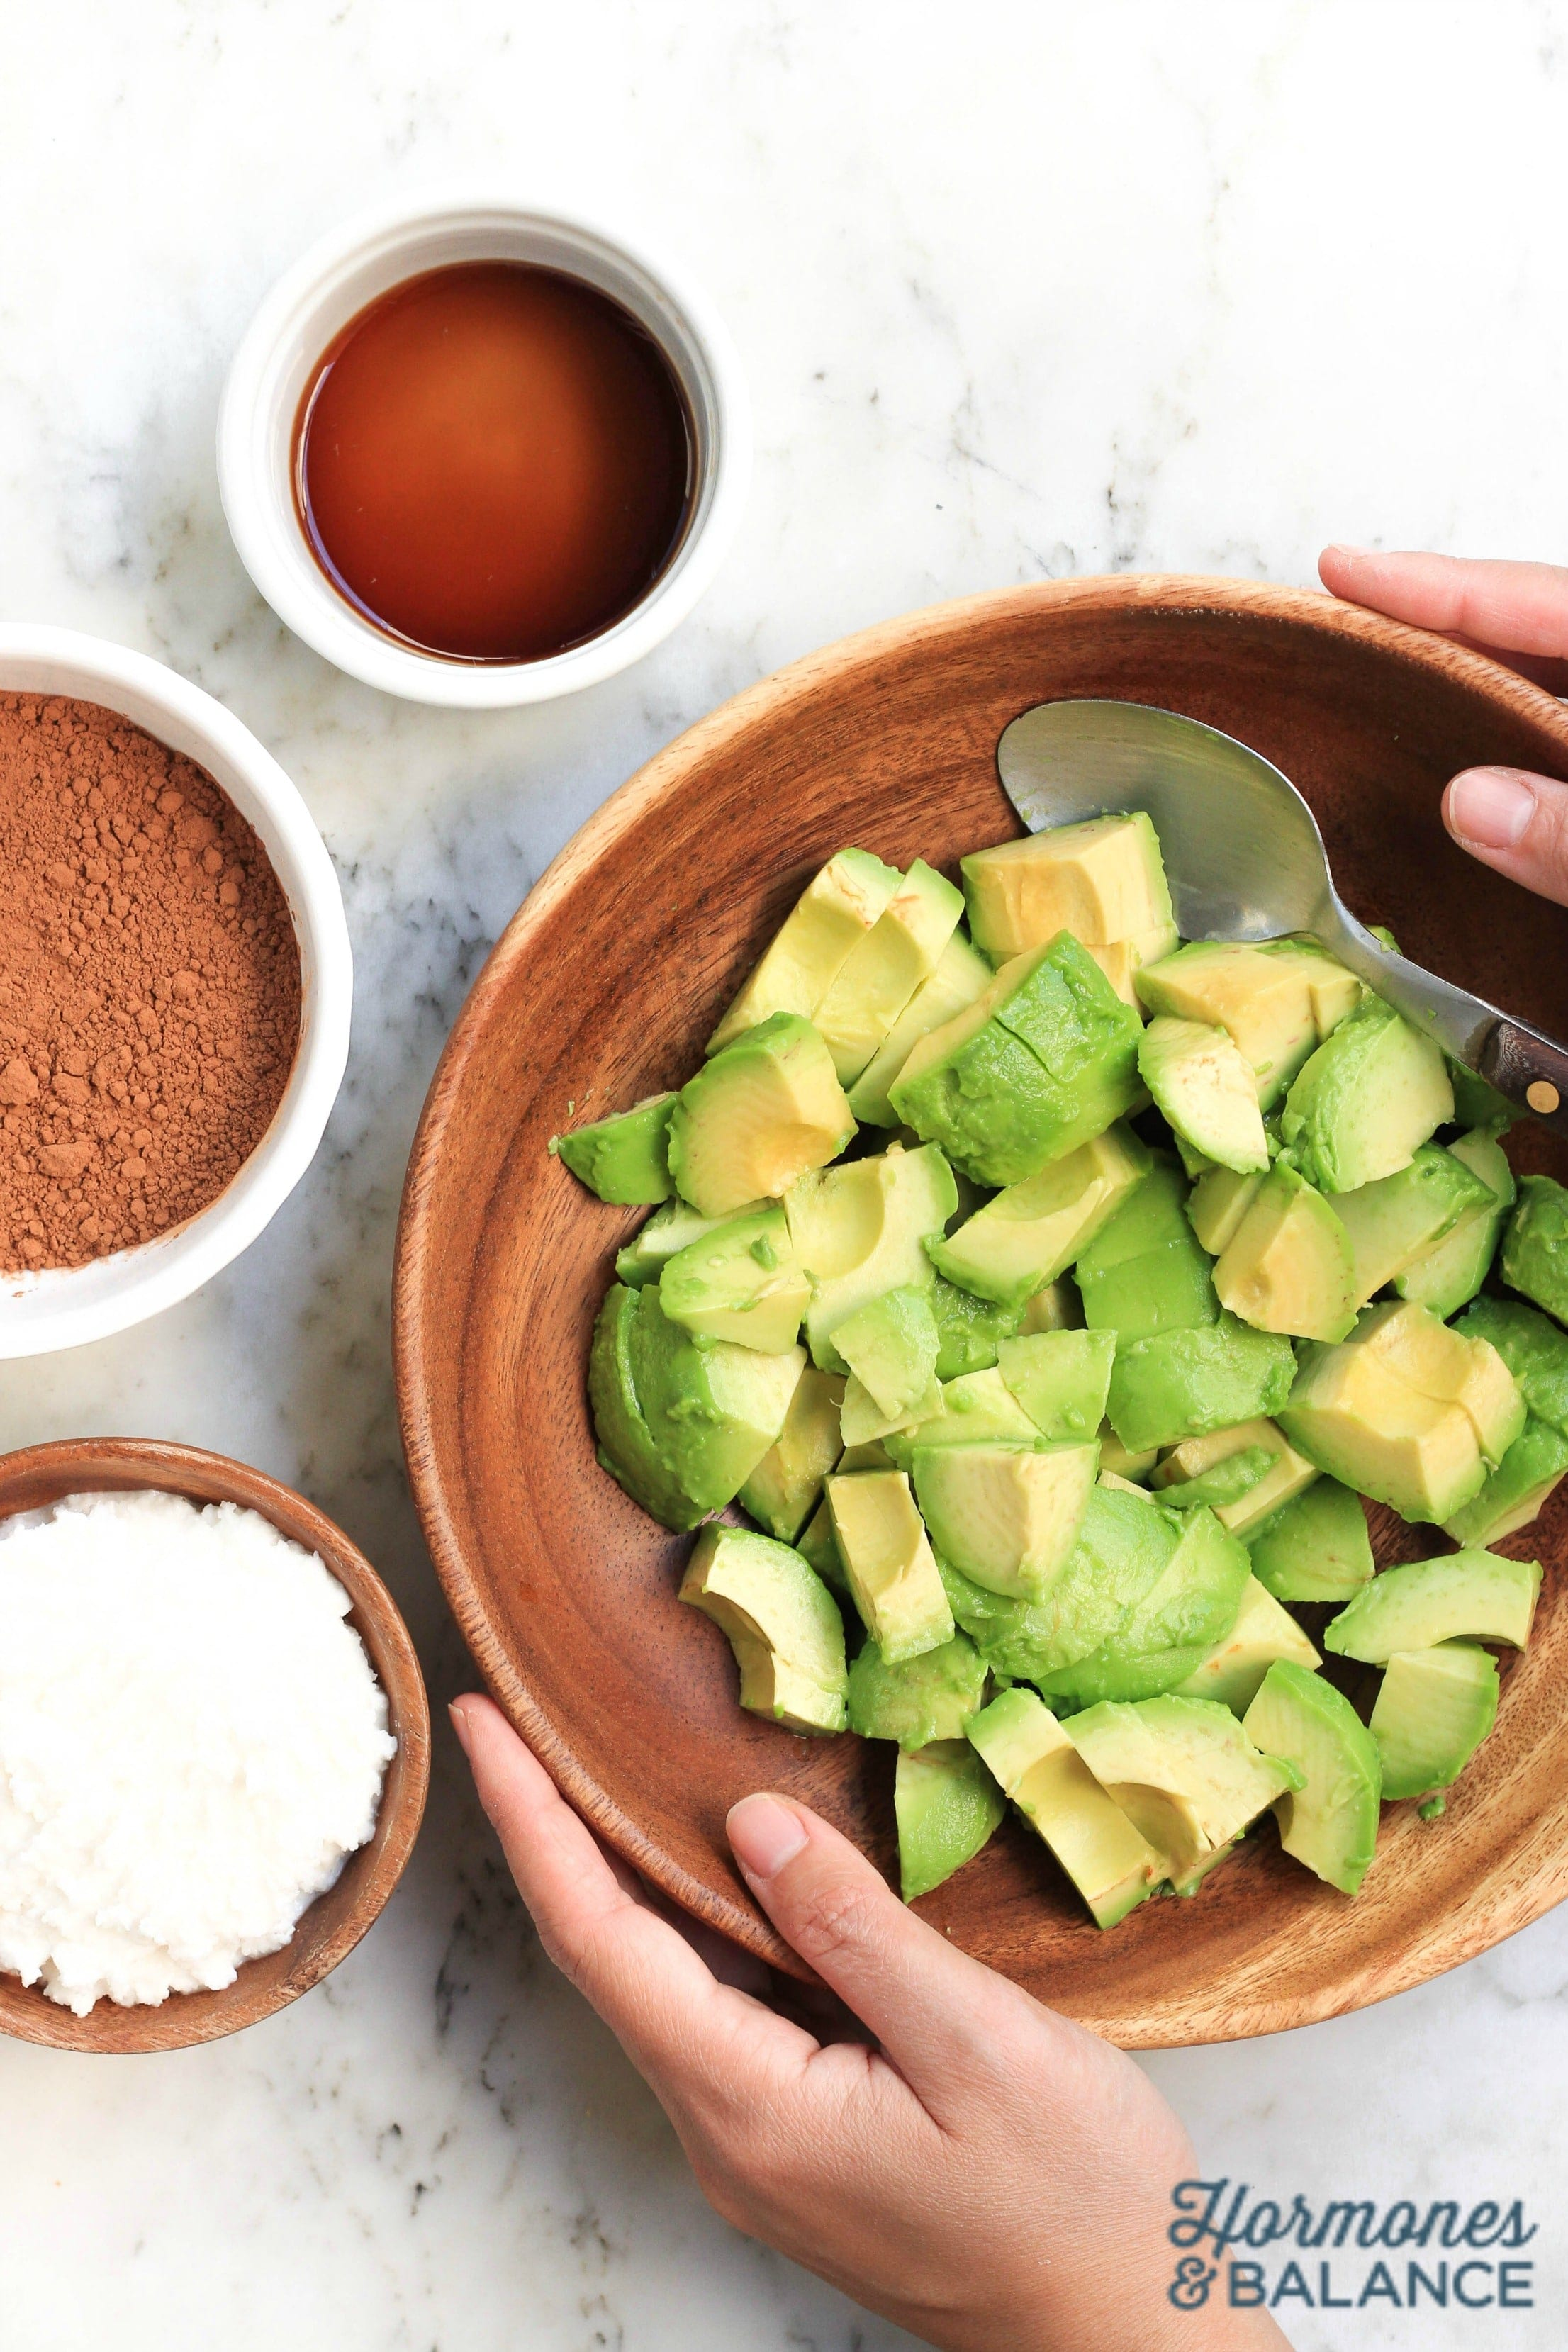 Chocolate Avocado Pudding Recipe Ingredients